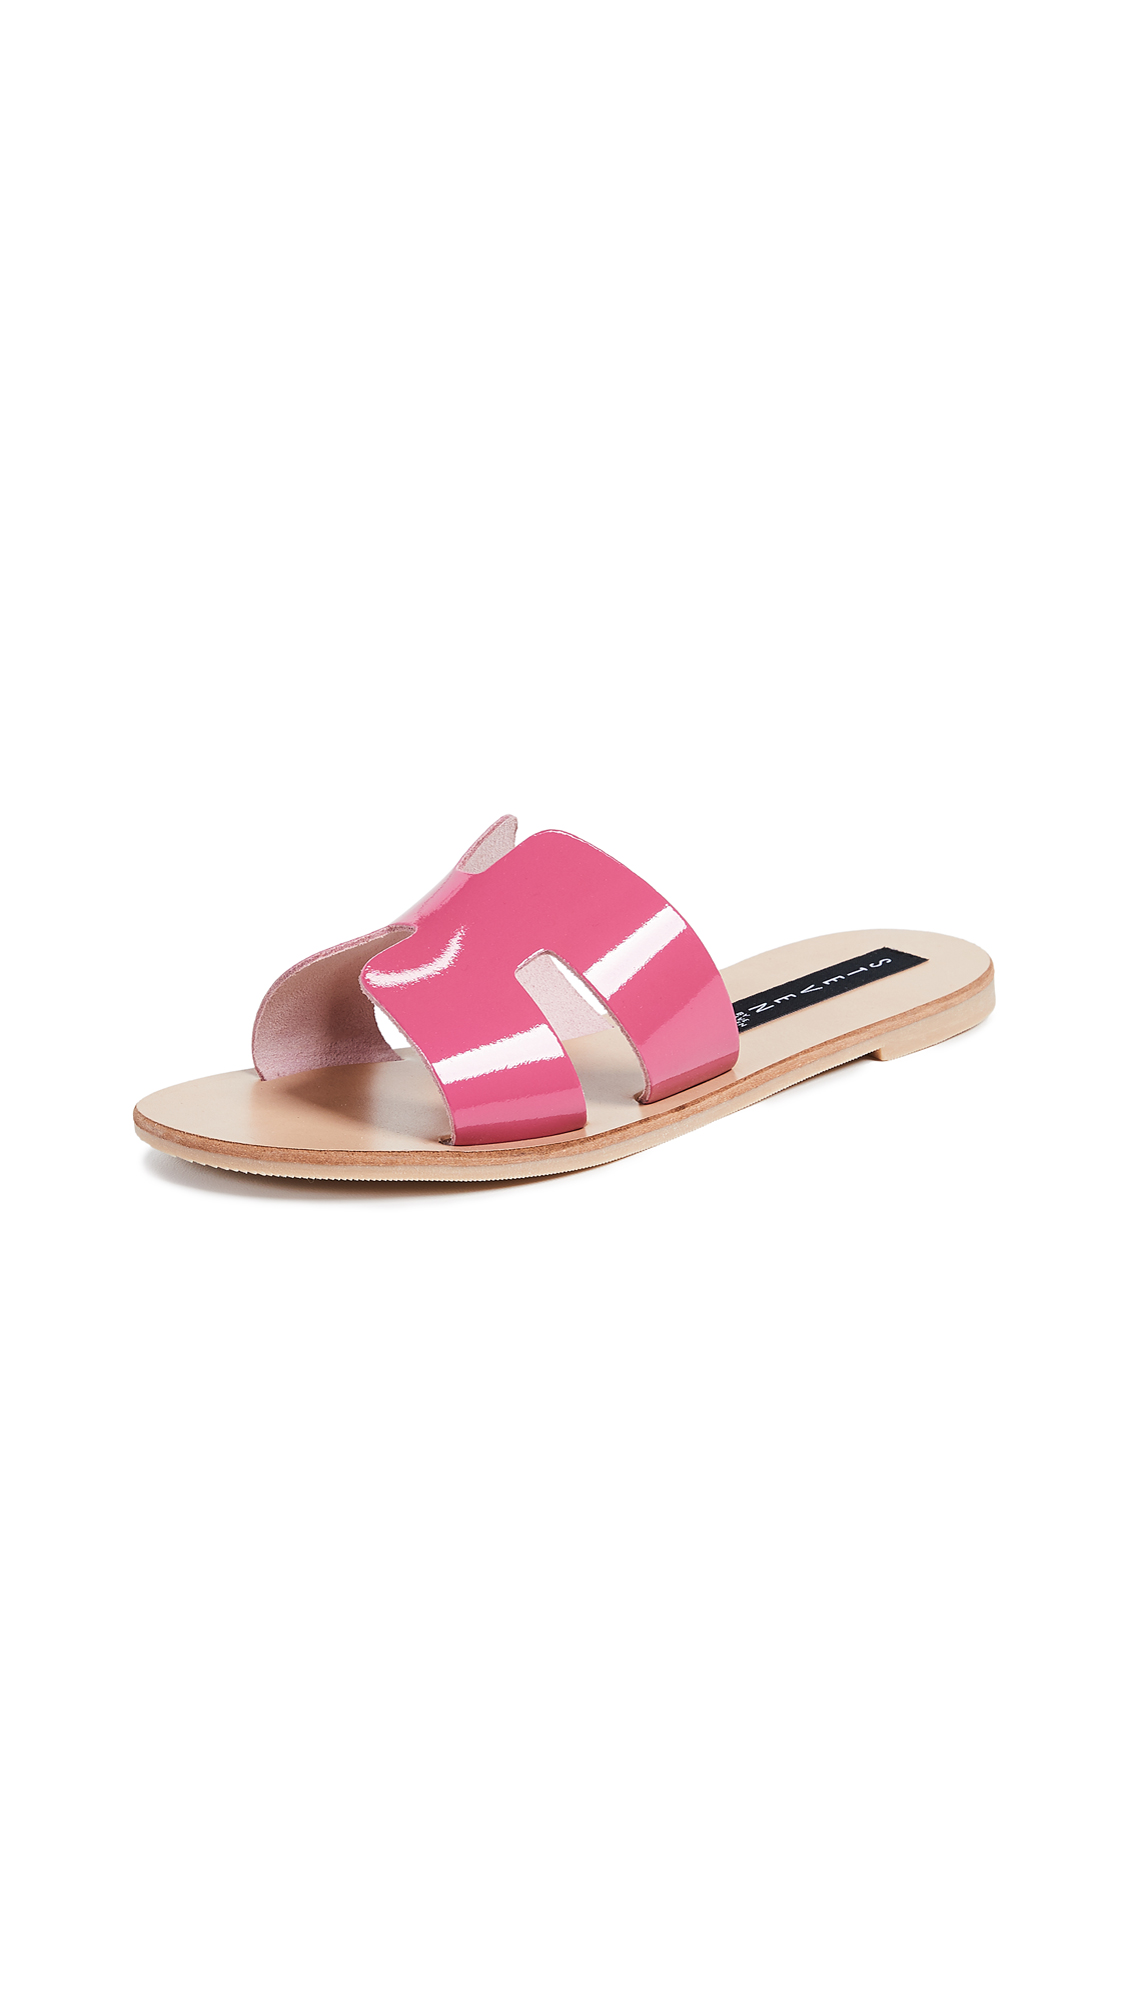 Steven Greece Slides - Neon Pink